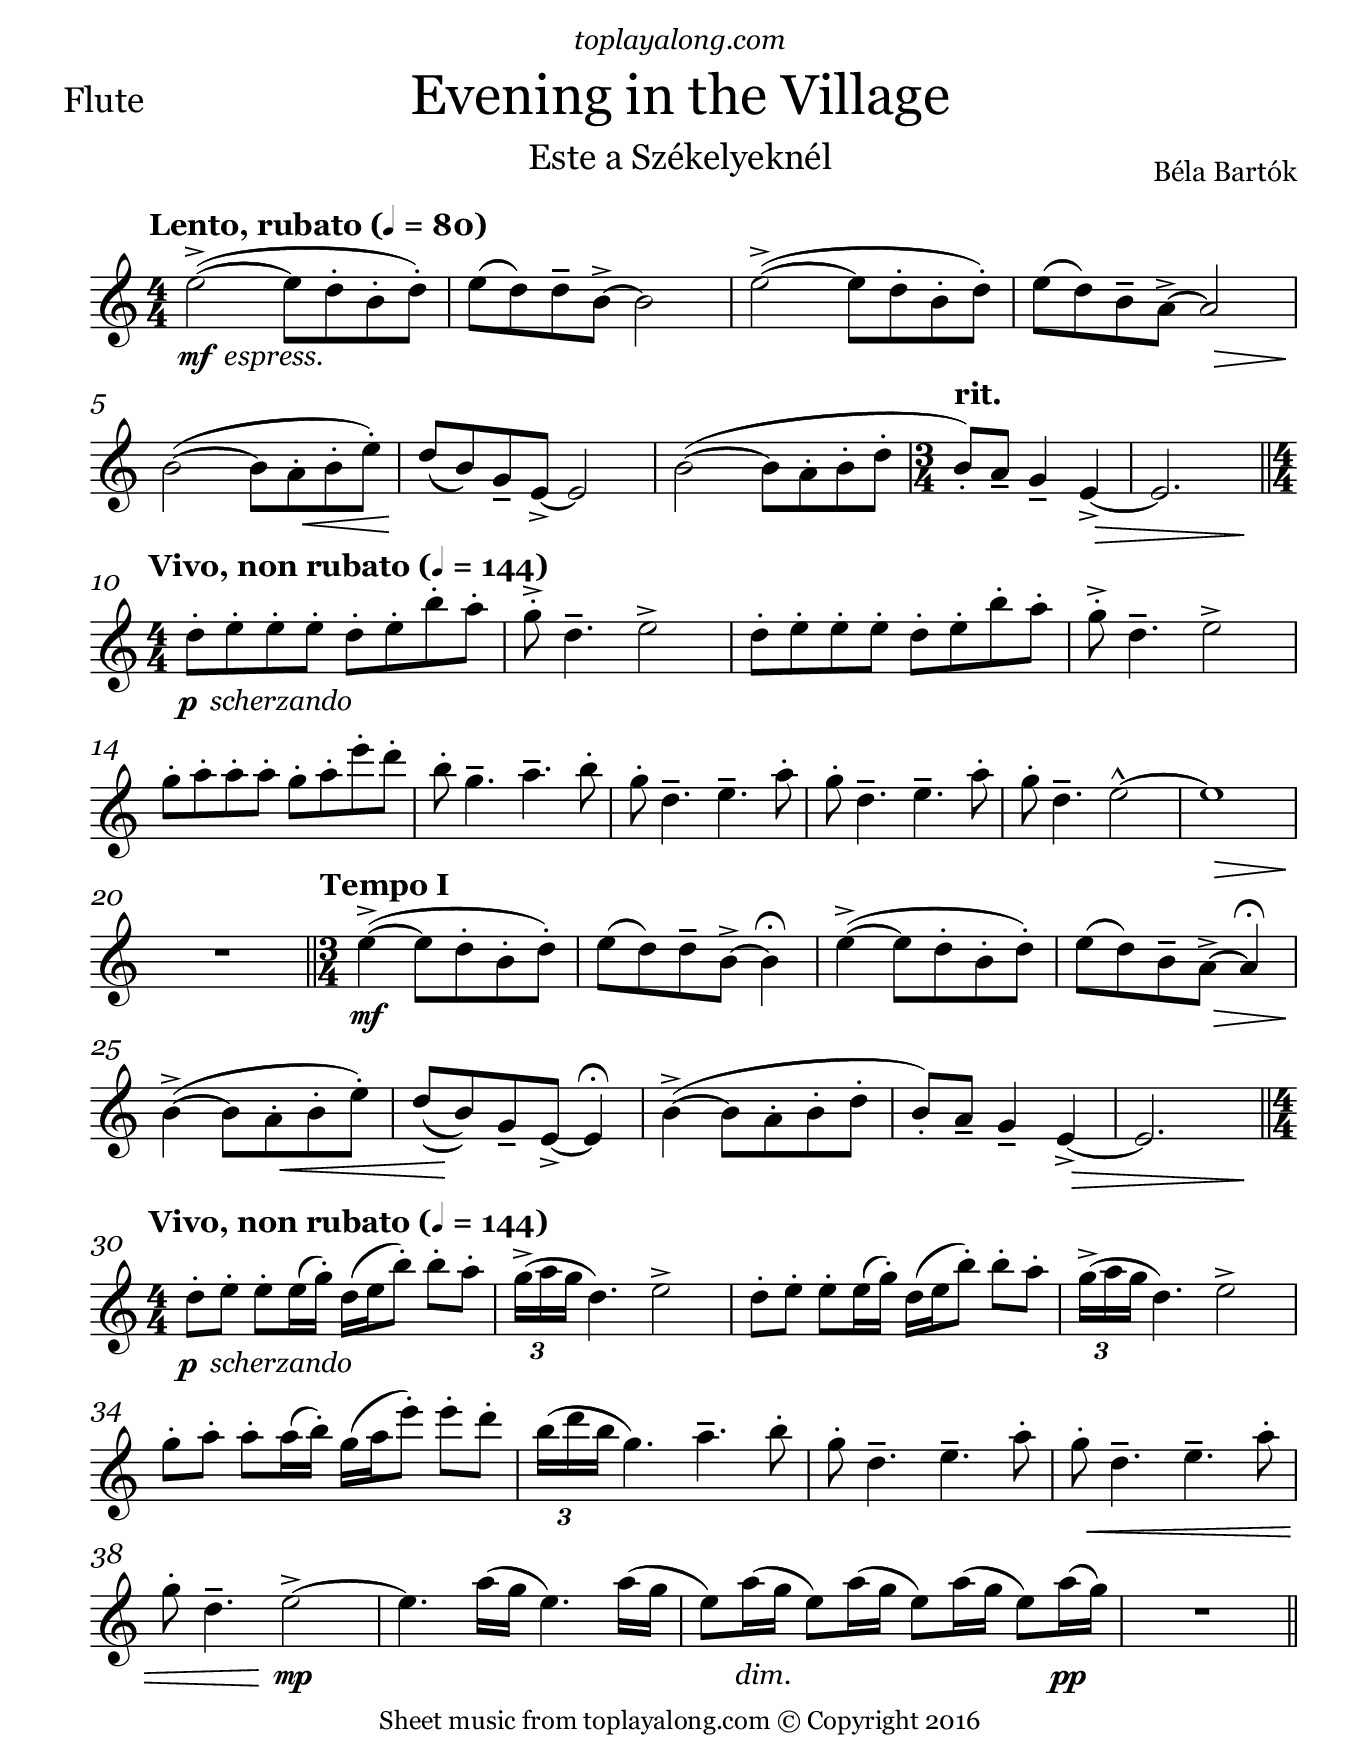 Evening In The Village By Bartok Free Sheet Music For Flute Visit Toplayalong Com And Get Access To Hundreds Sheet Music Flute Sheet Music Violin Sheet Music